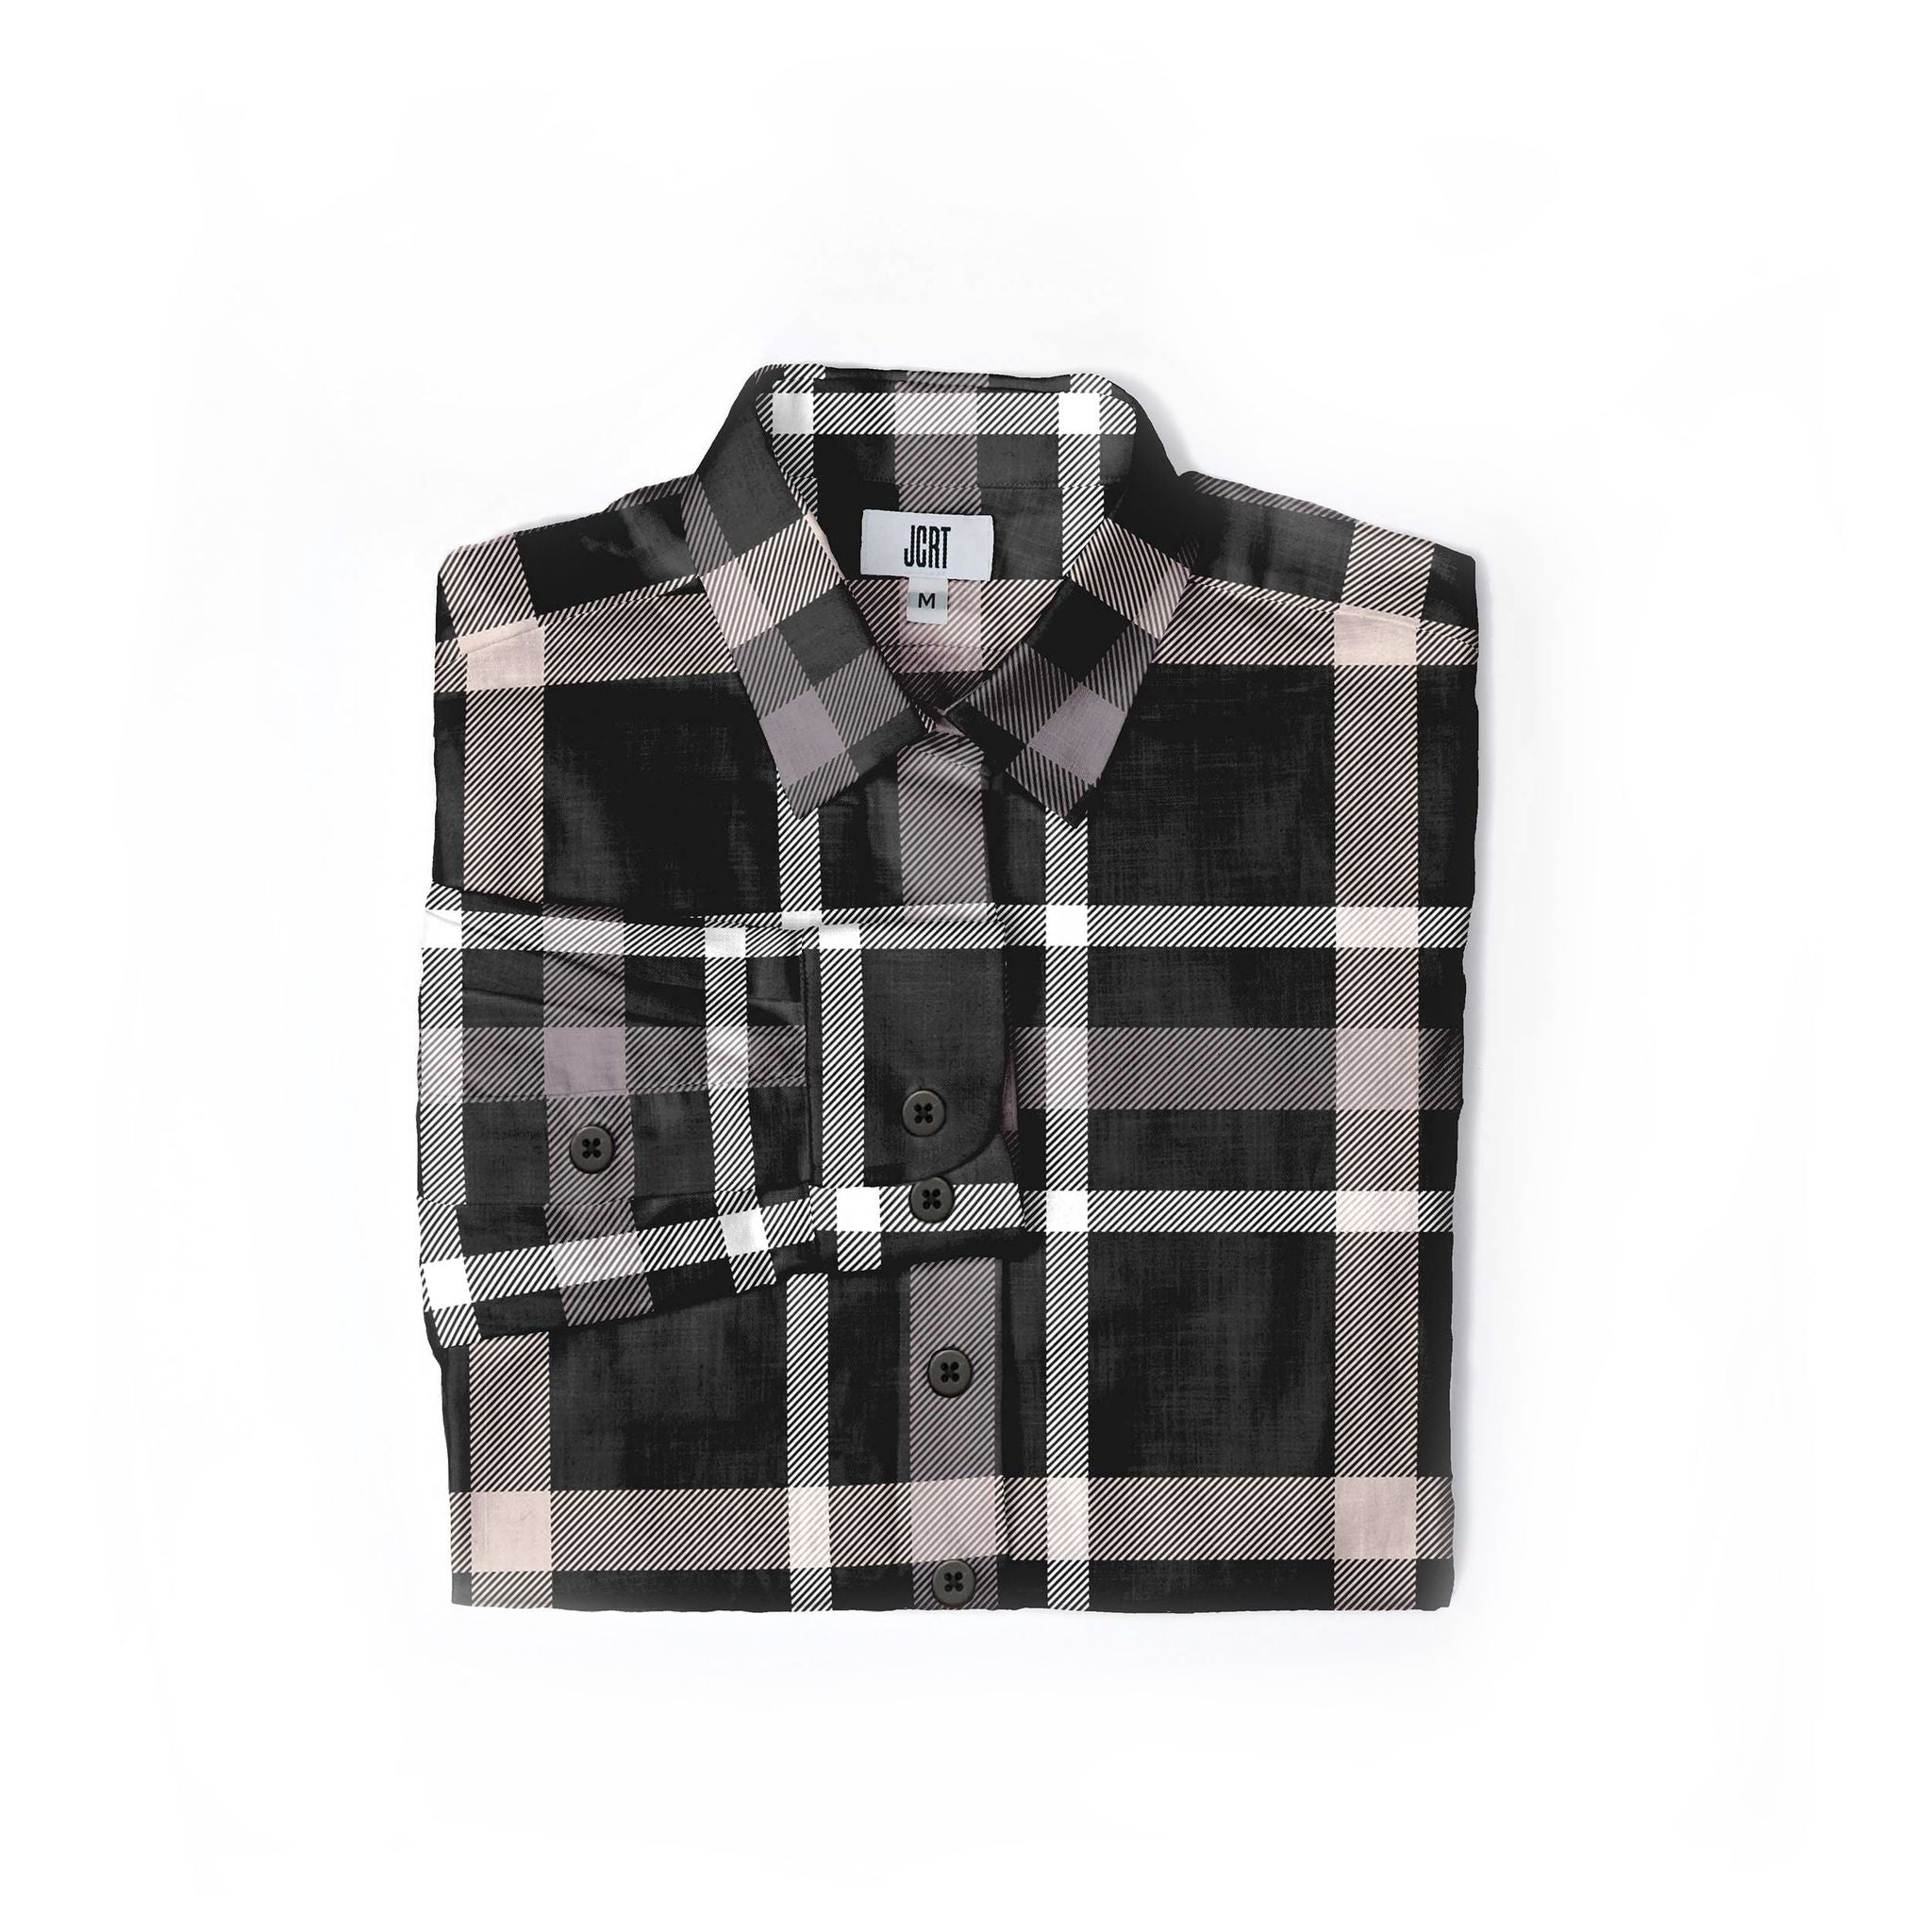 The Just Kids Plaid Women's Long Sleeve Shirt